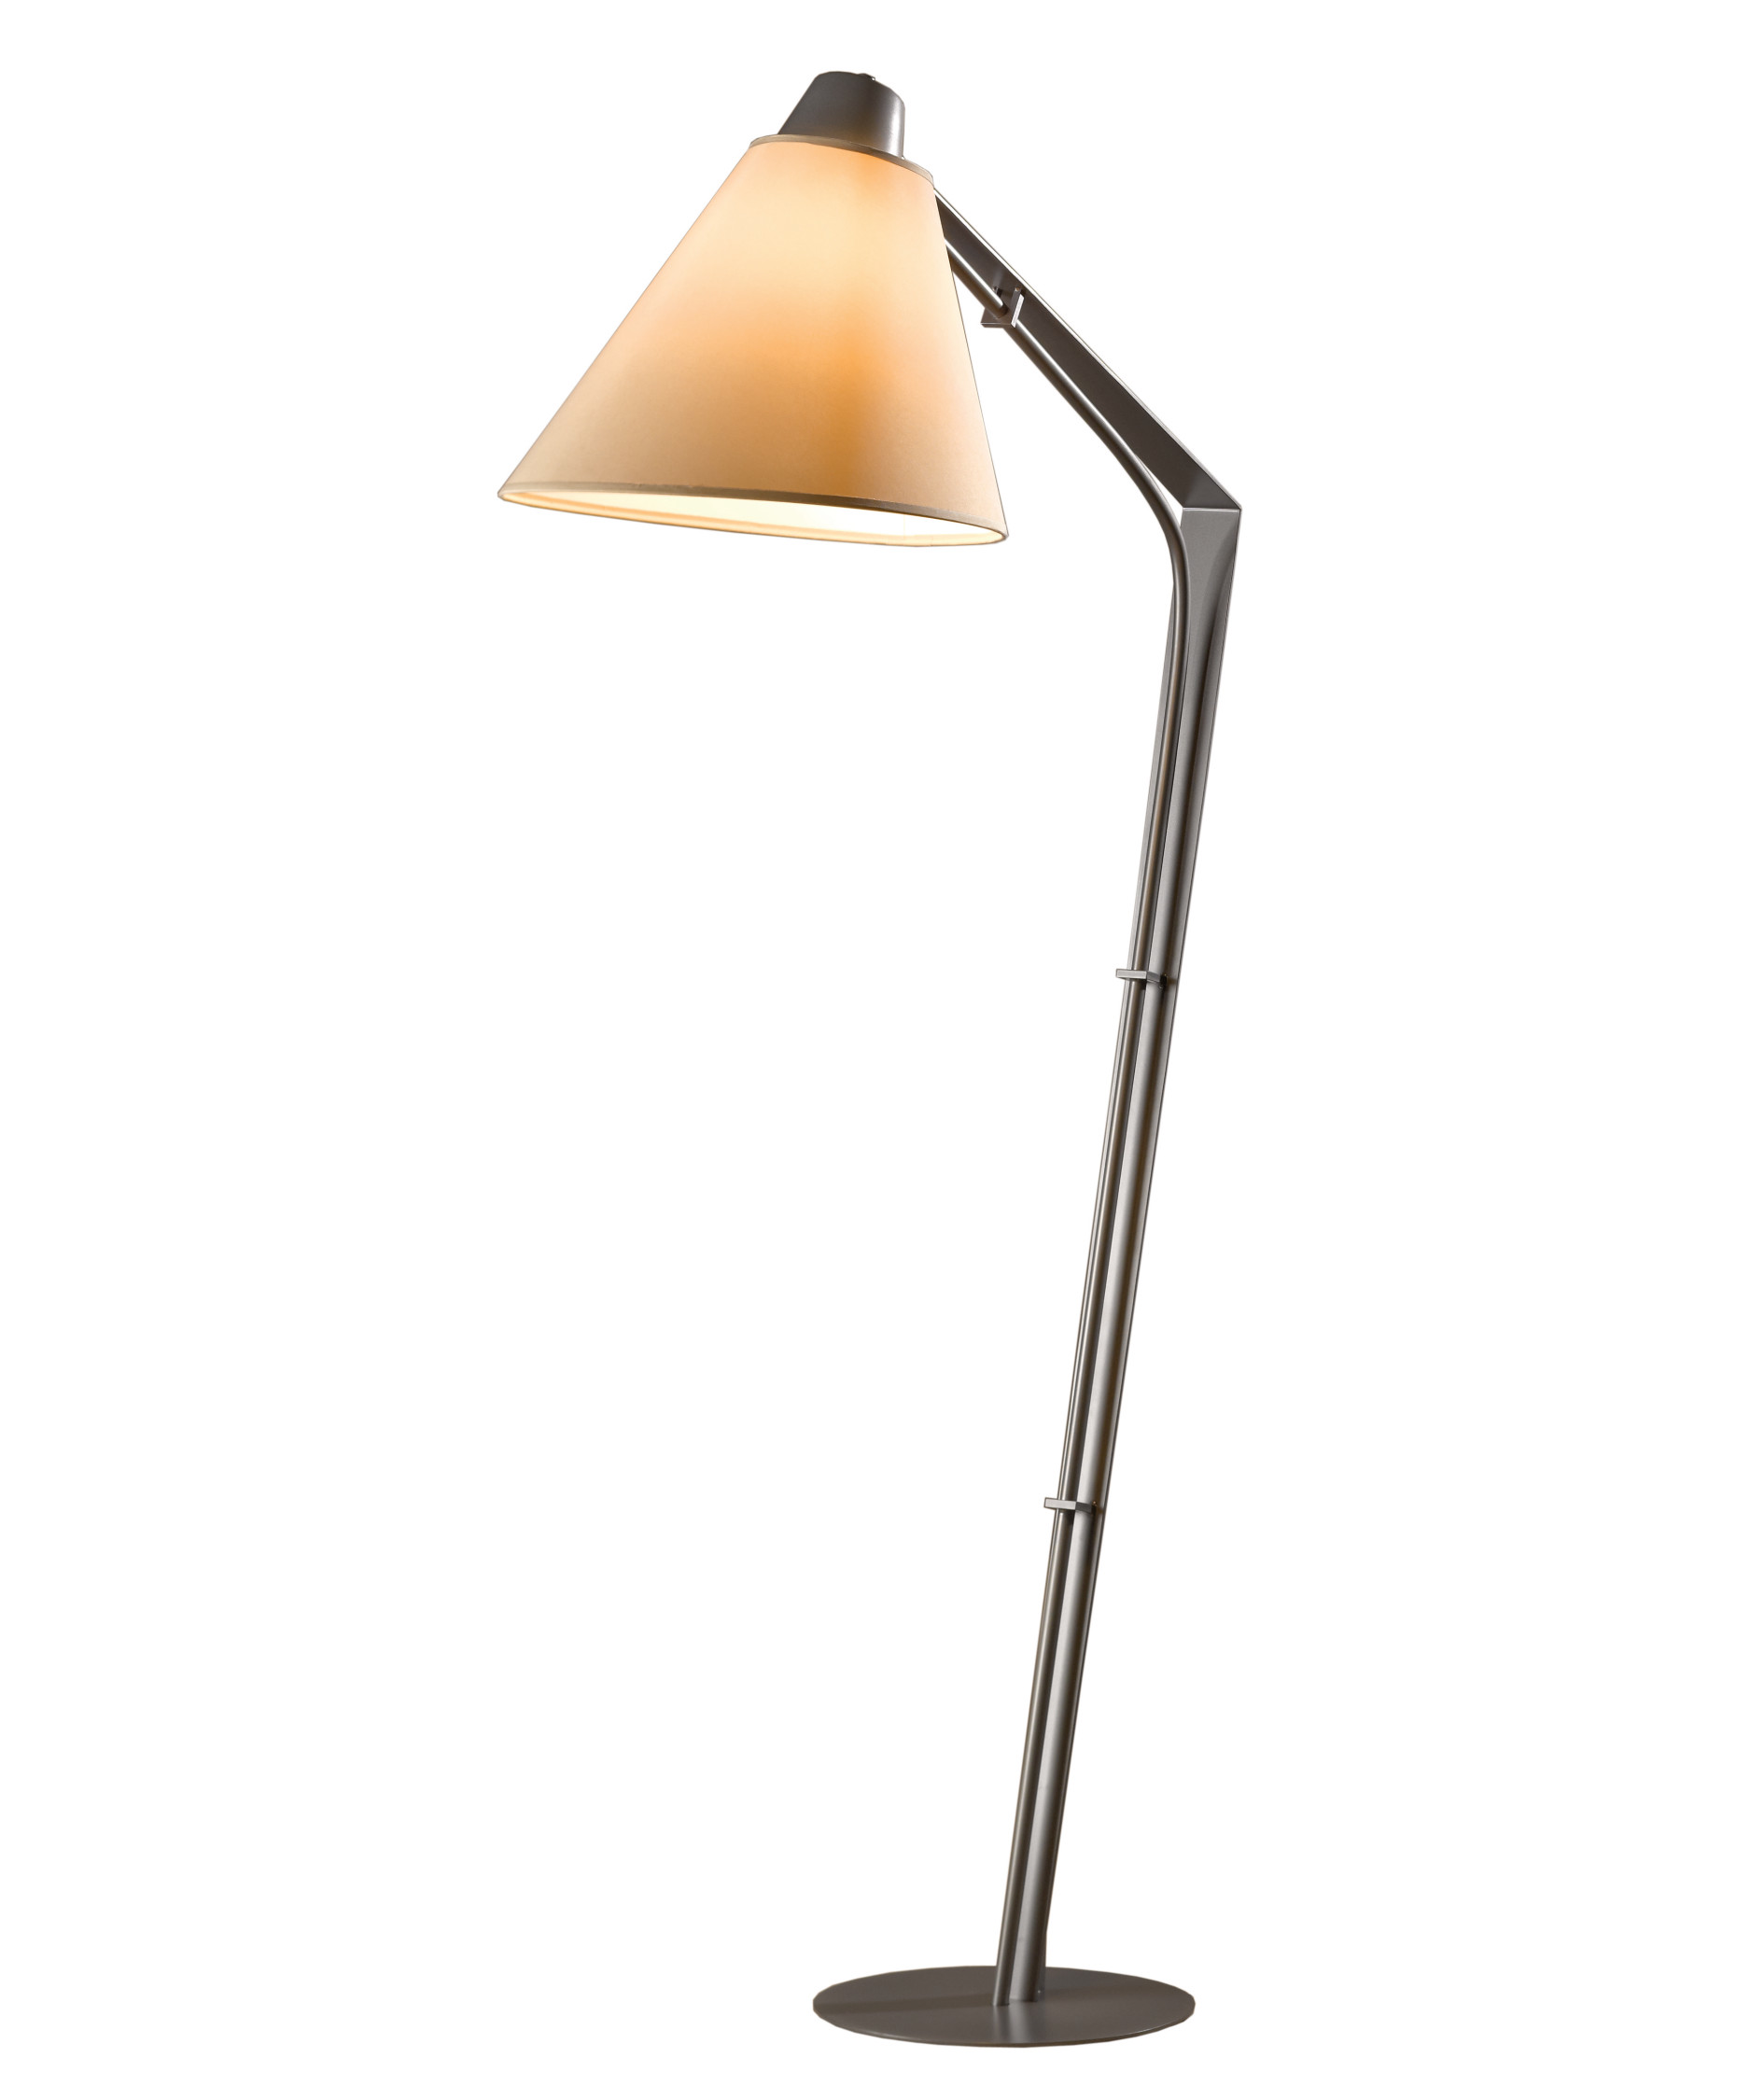 Ideas Bedside Reading Lamp Design